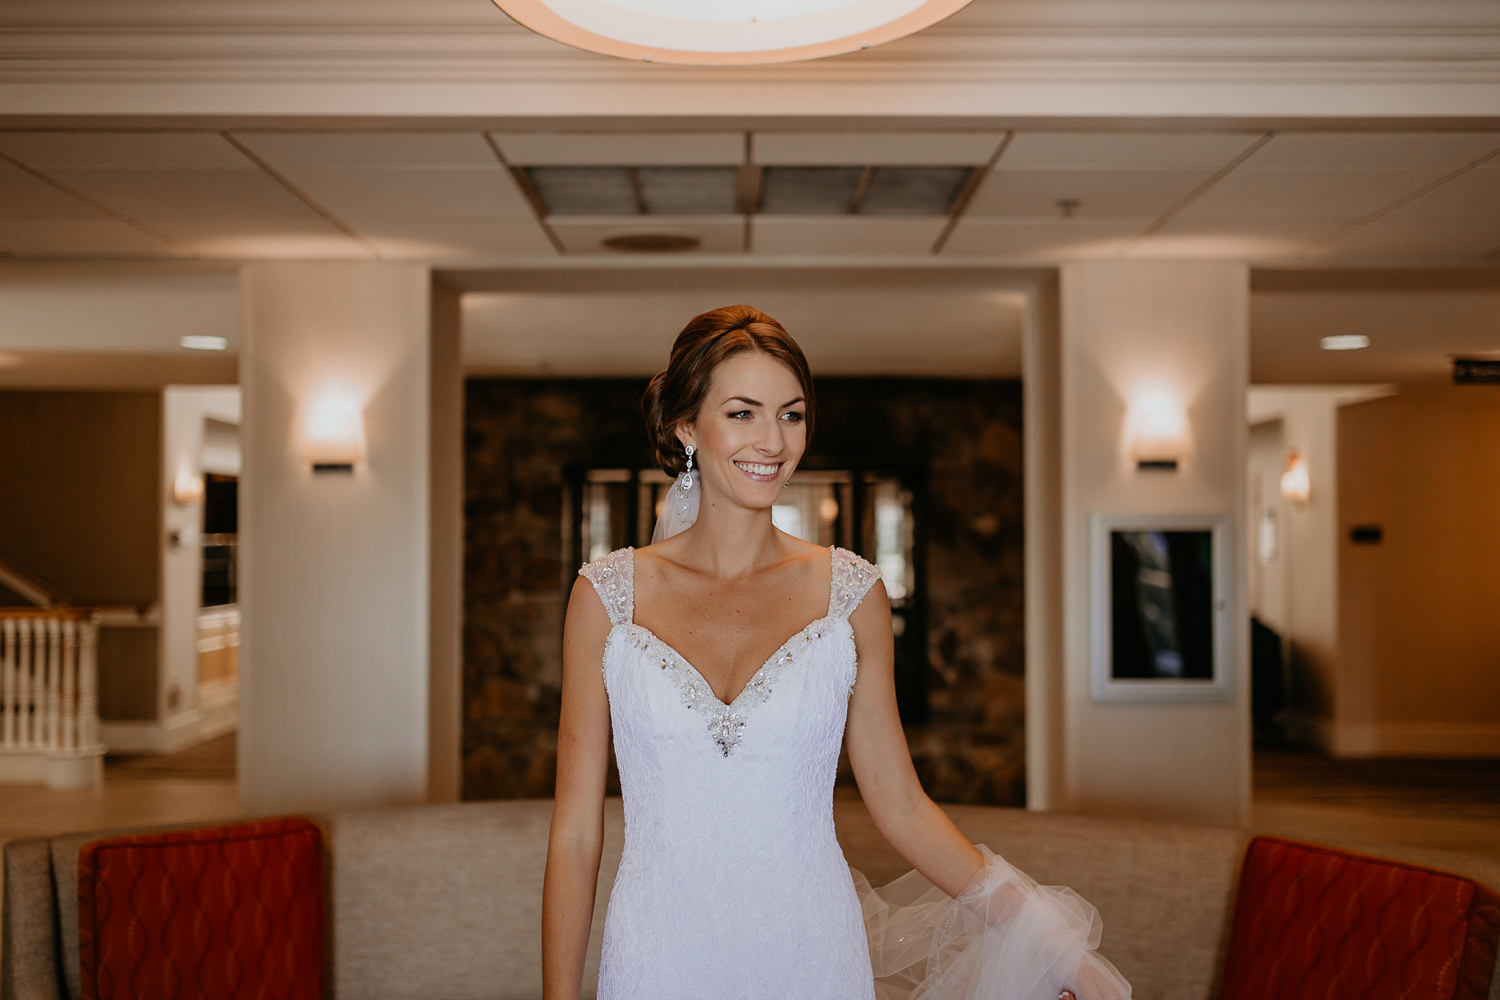 bride in Lake Mary Hilton hotel lobby holding her veil smiling at someone off camera